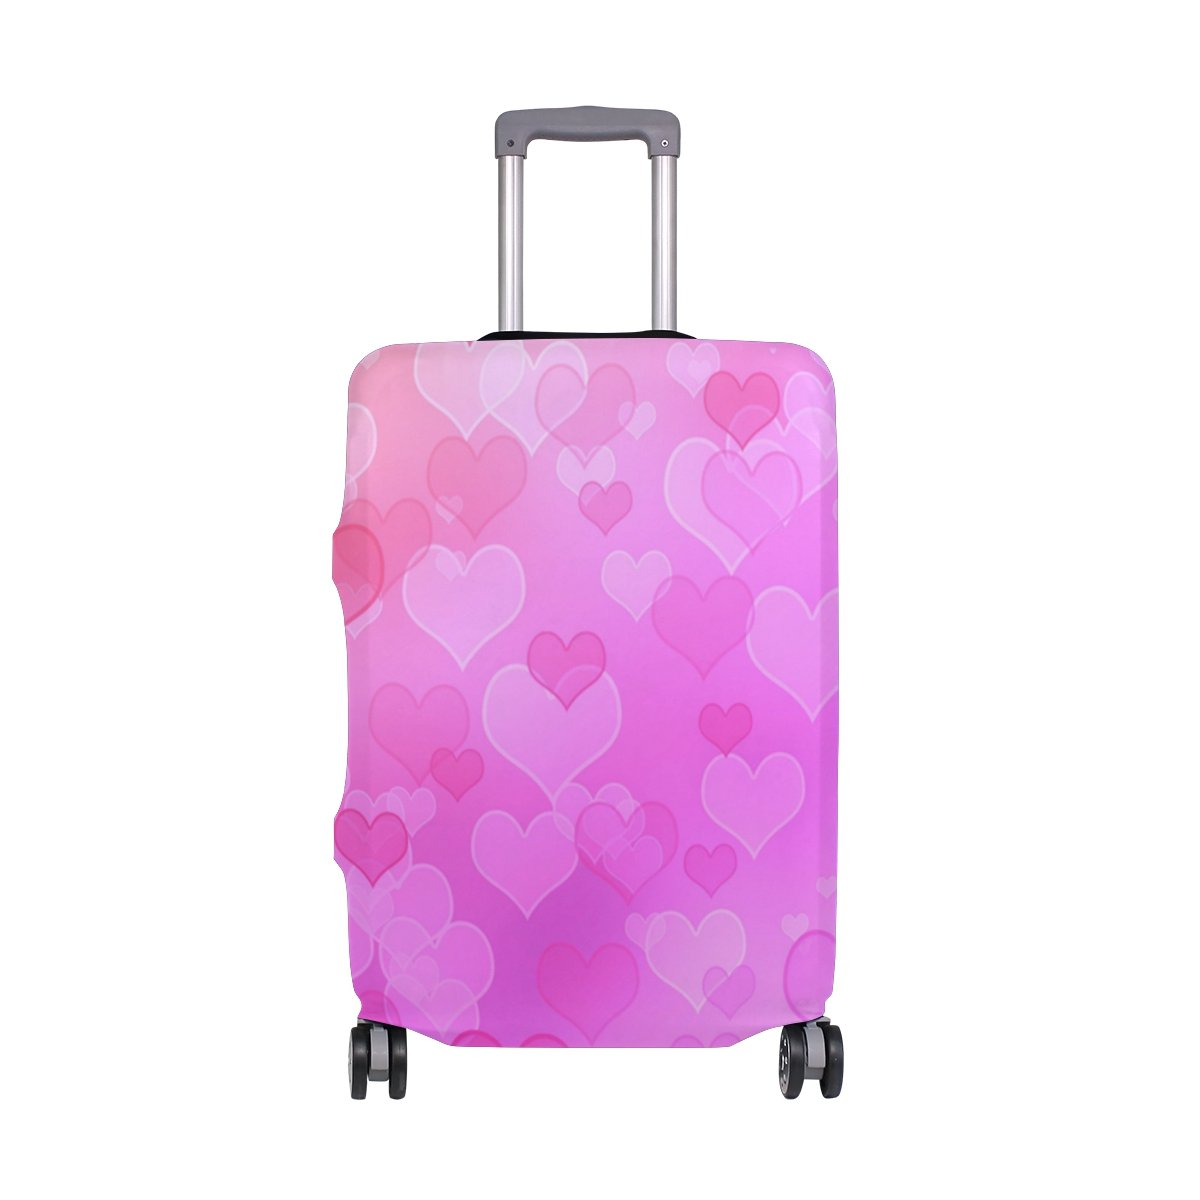 ALAZA Pink Hearts Valentine's Day Wedding Luggage Cover Fits 24-26 Inch Suitcase Spandex Travel Protector M